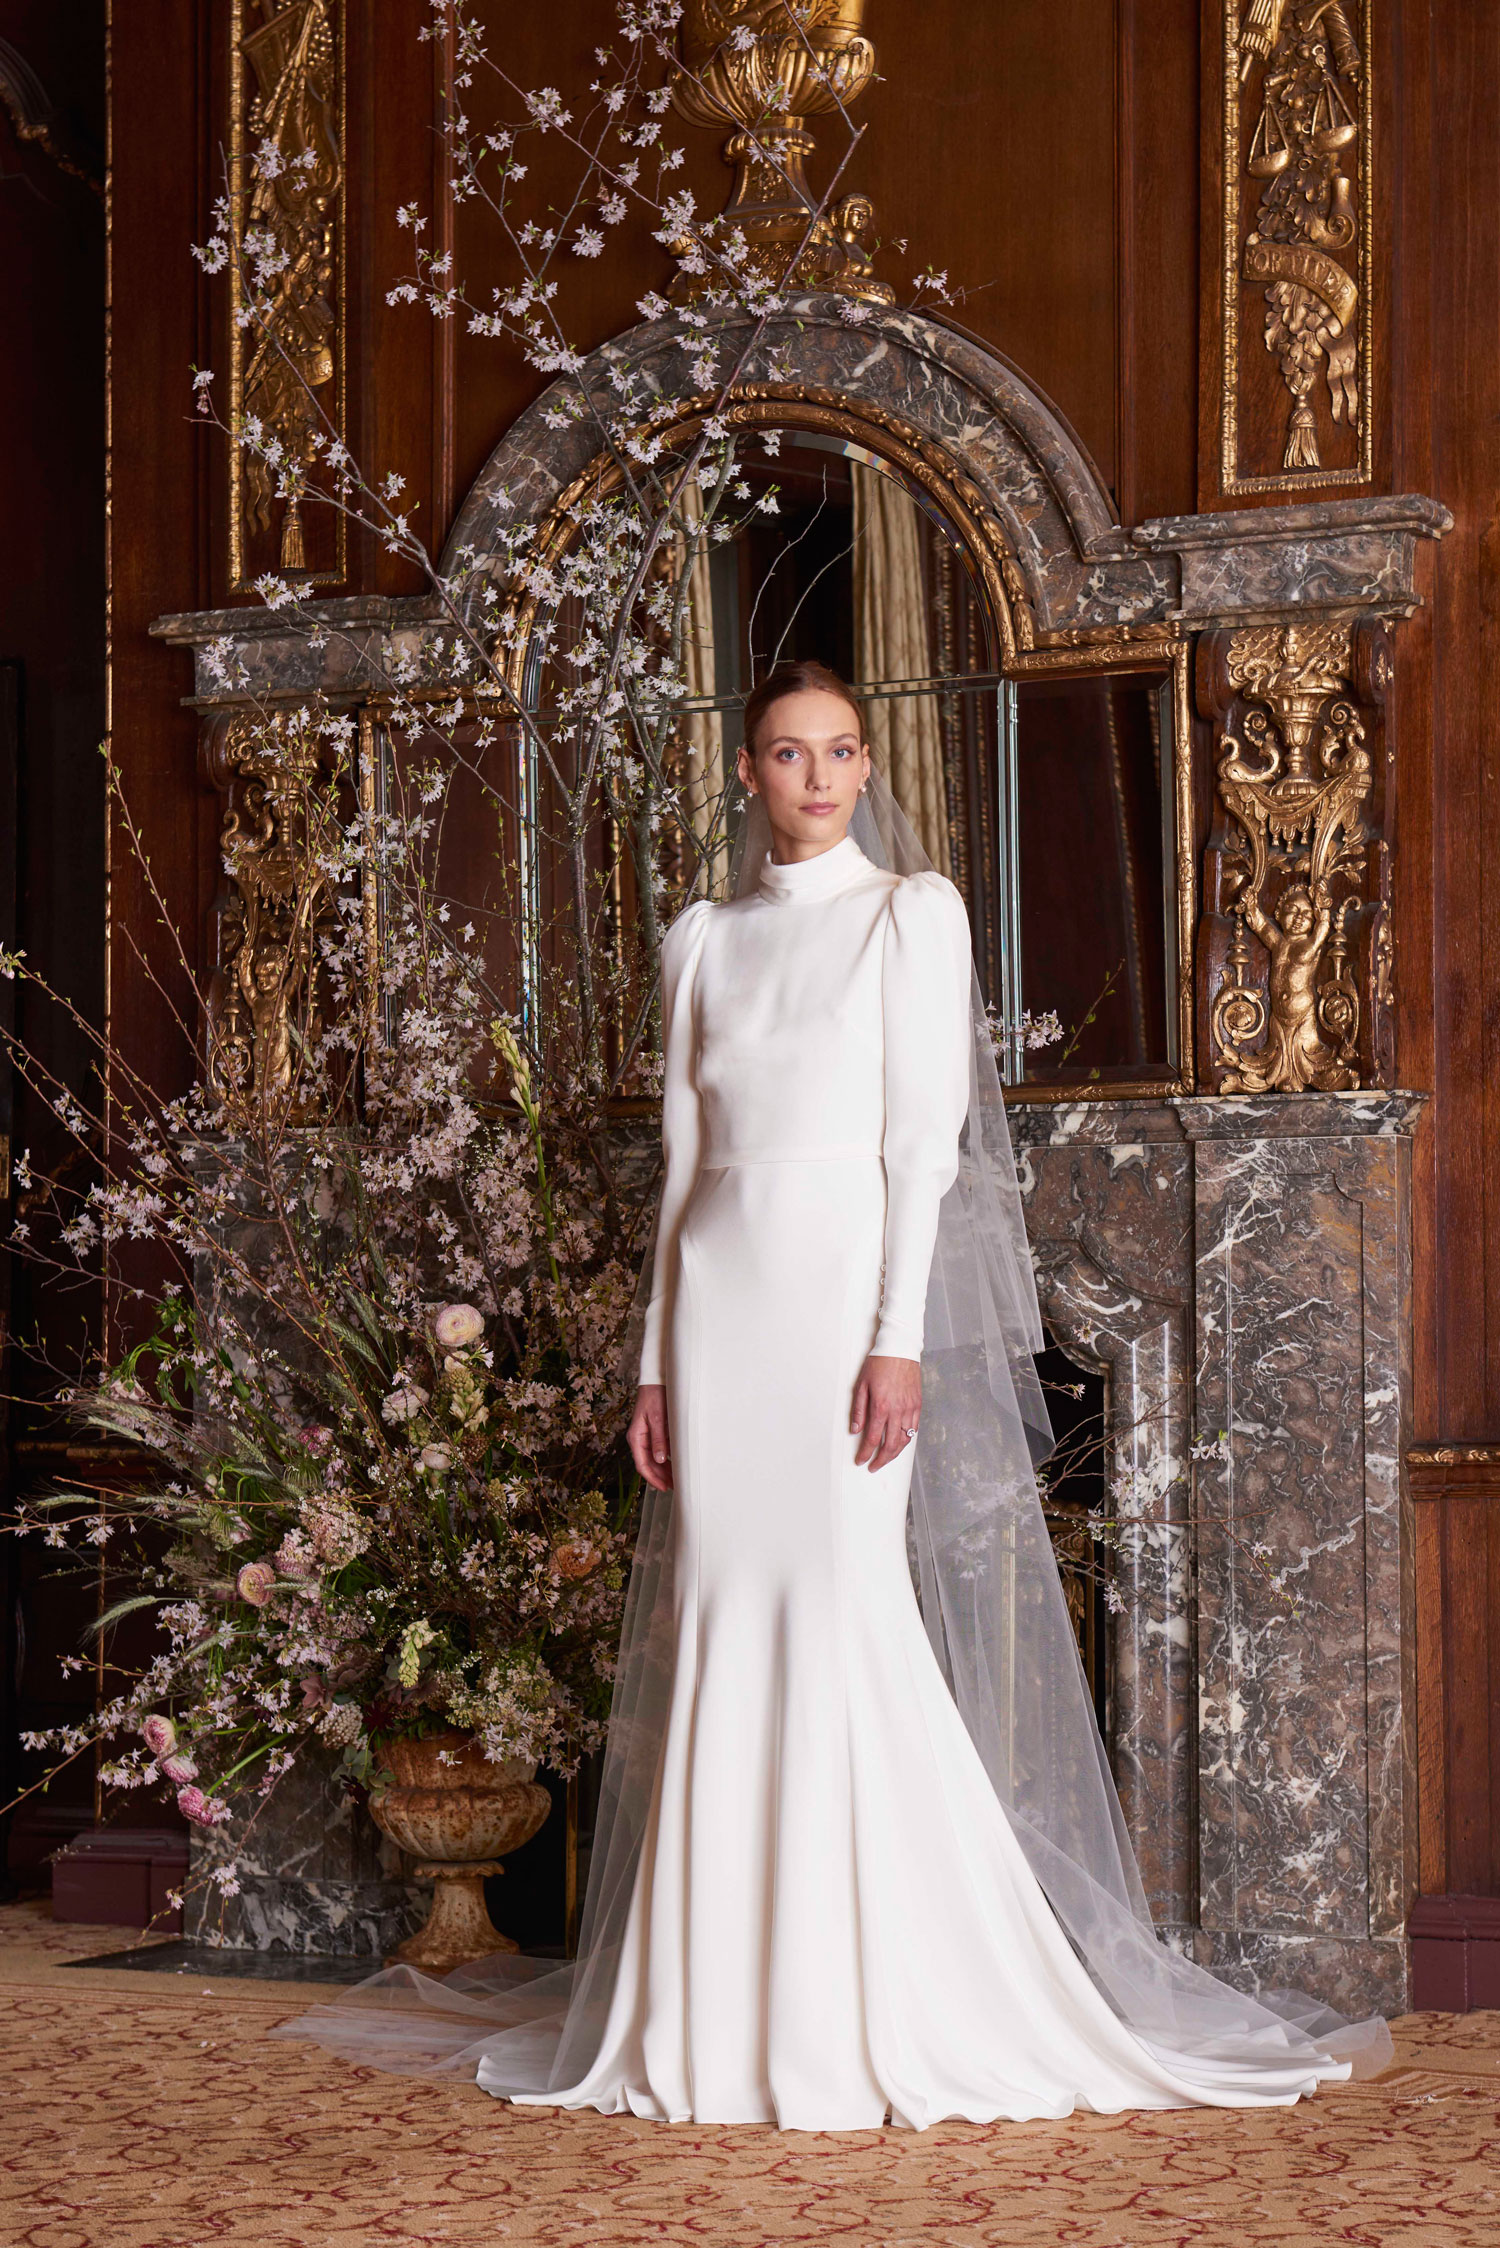 be inspired by aspects of meghan markle s wedding dress meghan markle s wedding dress